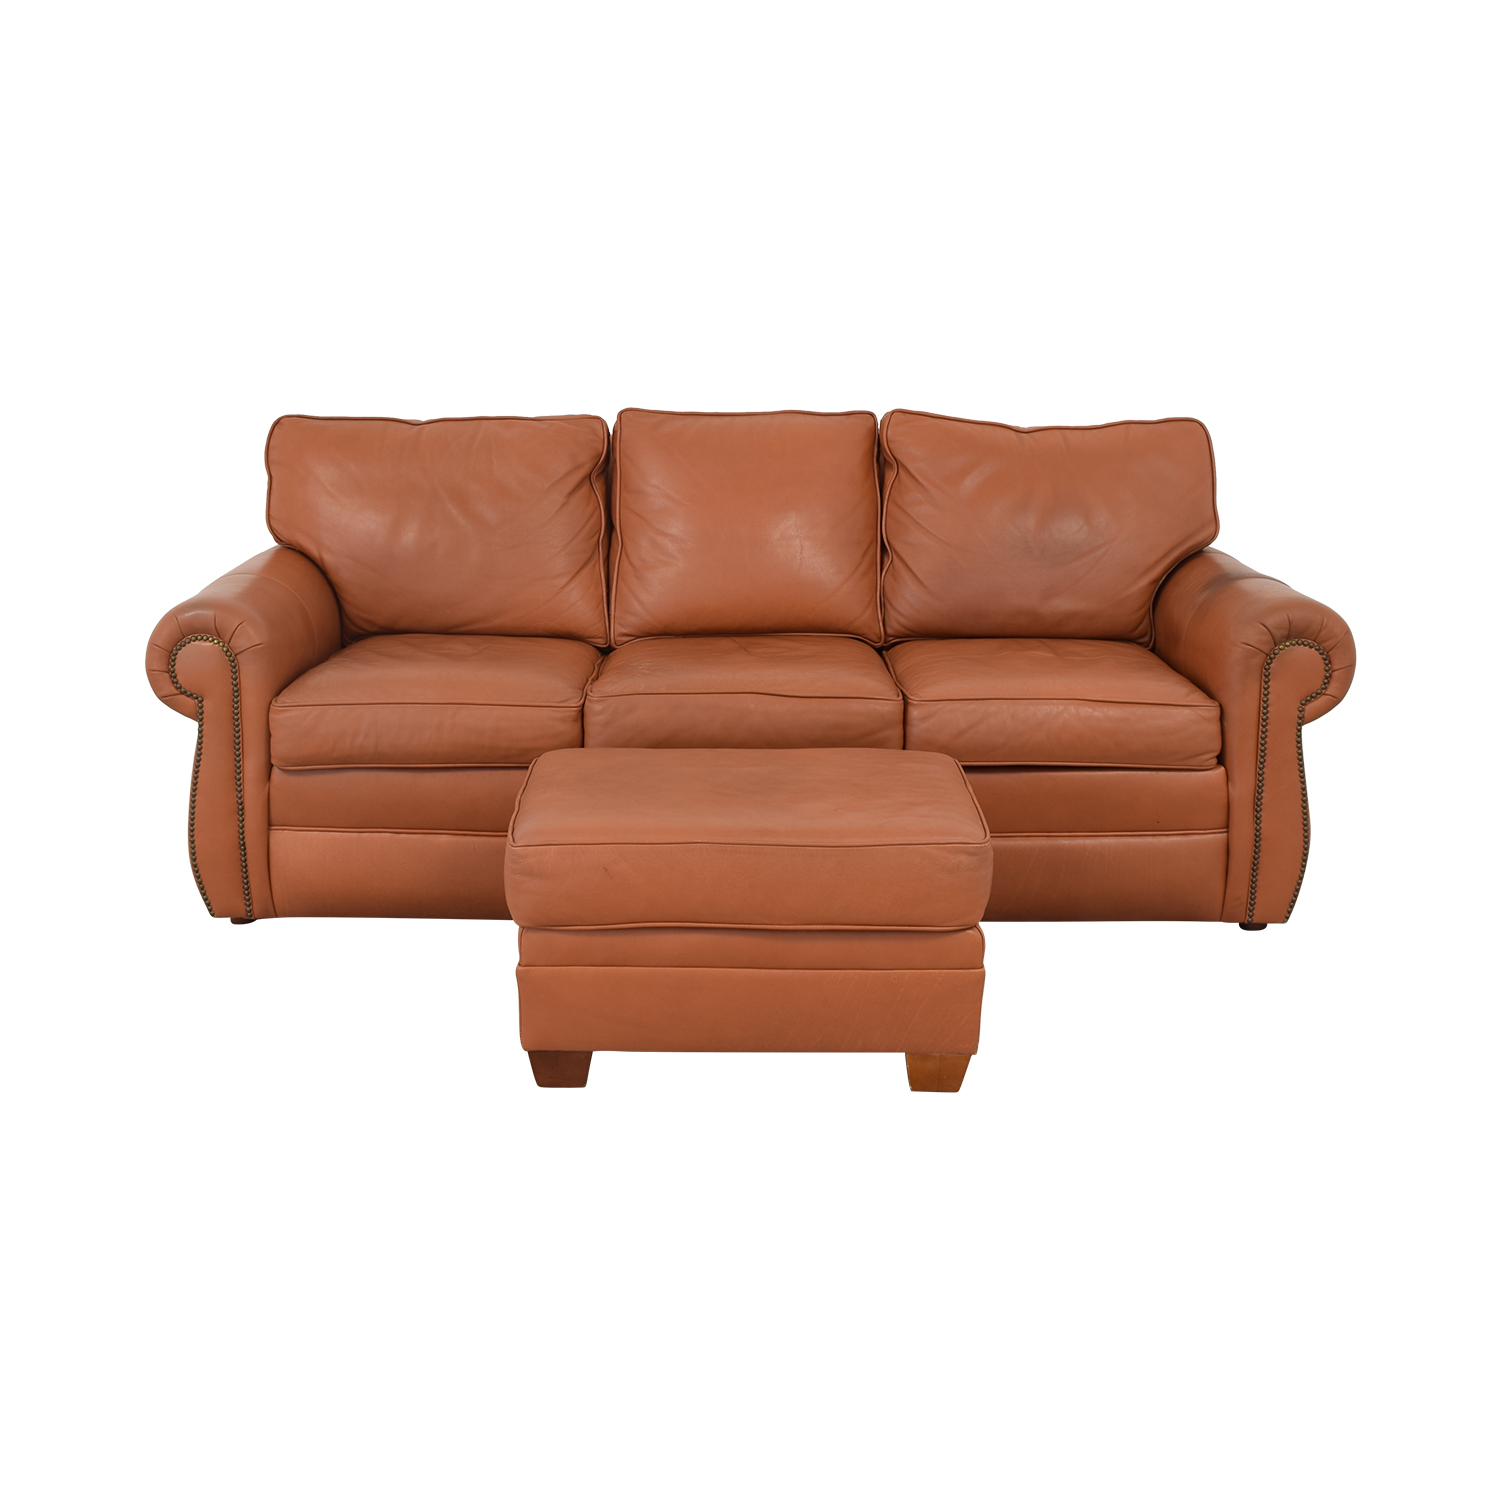 buy Ethan Allen Three Cushion Sofa with Ottoman Ethan Allen Classic Sofas